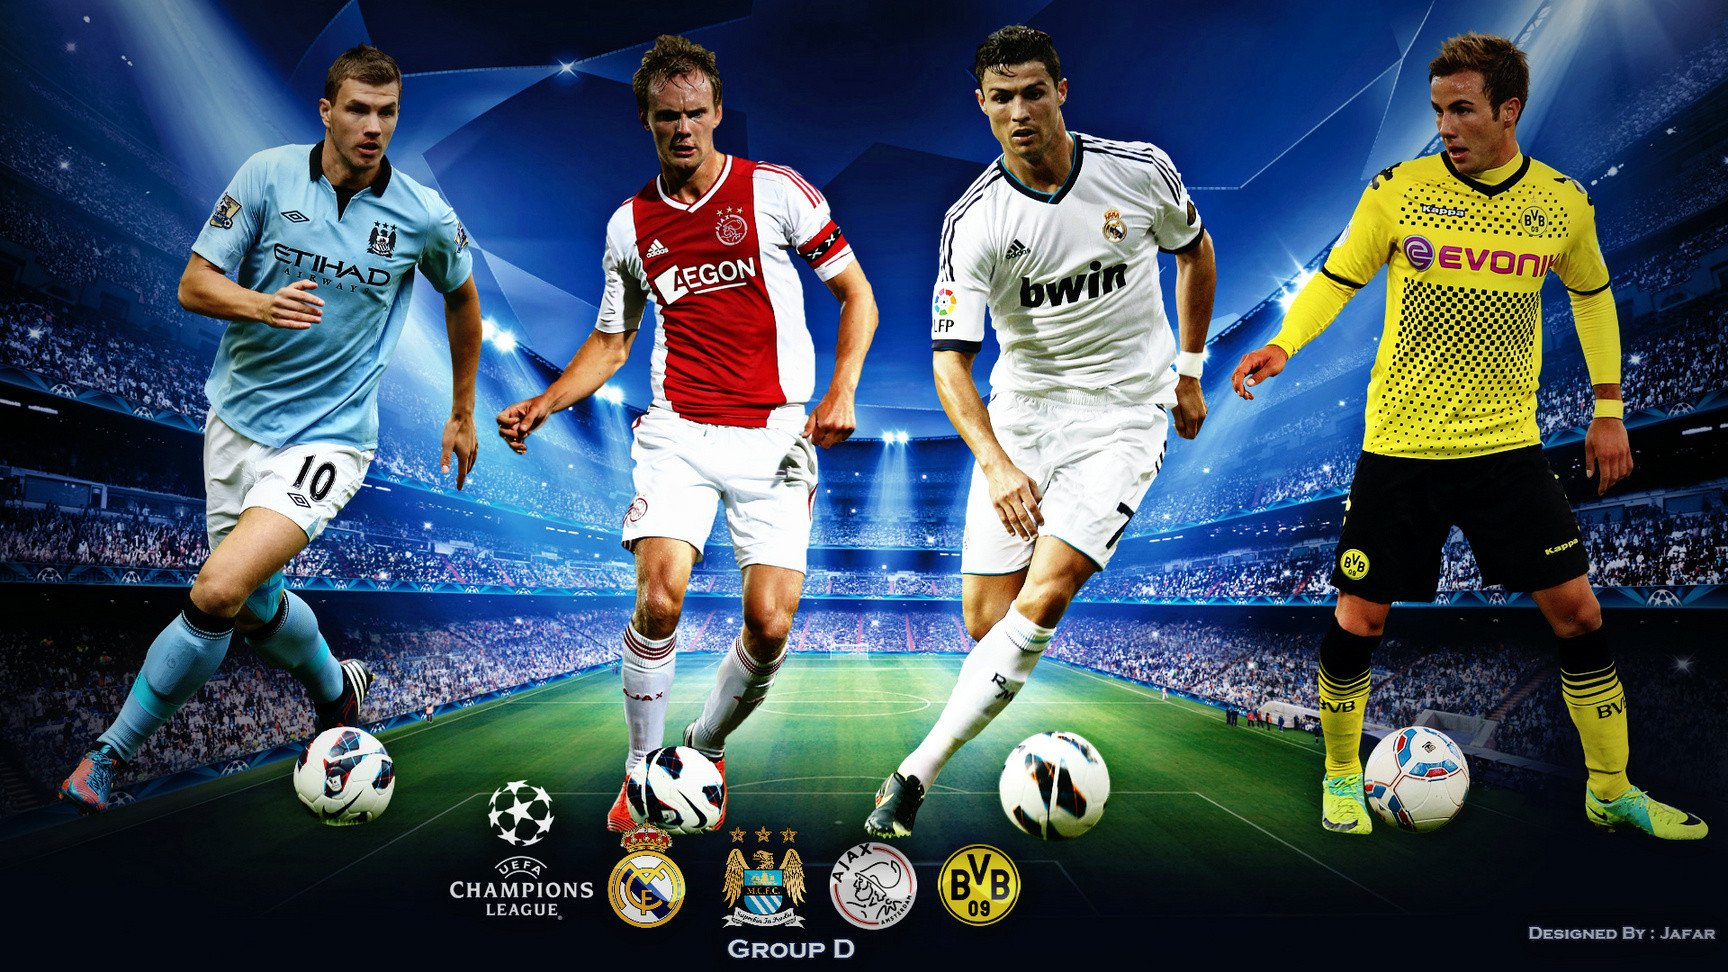 uefa champions league wallpaper wallpapersafari